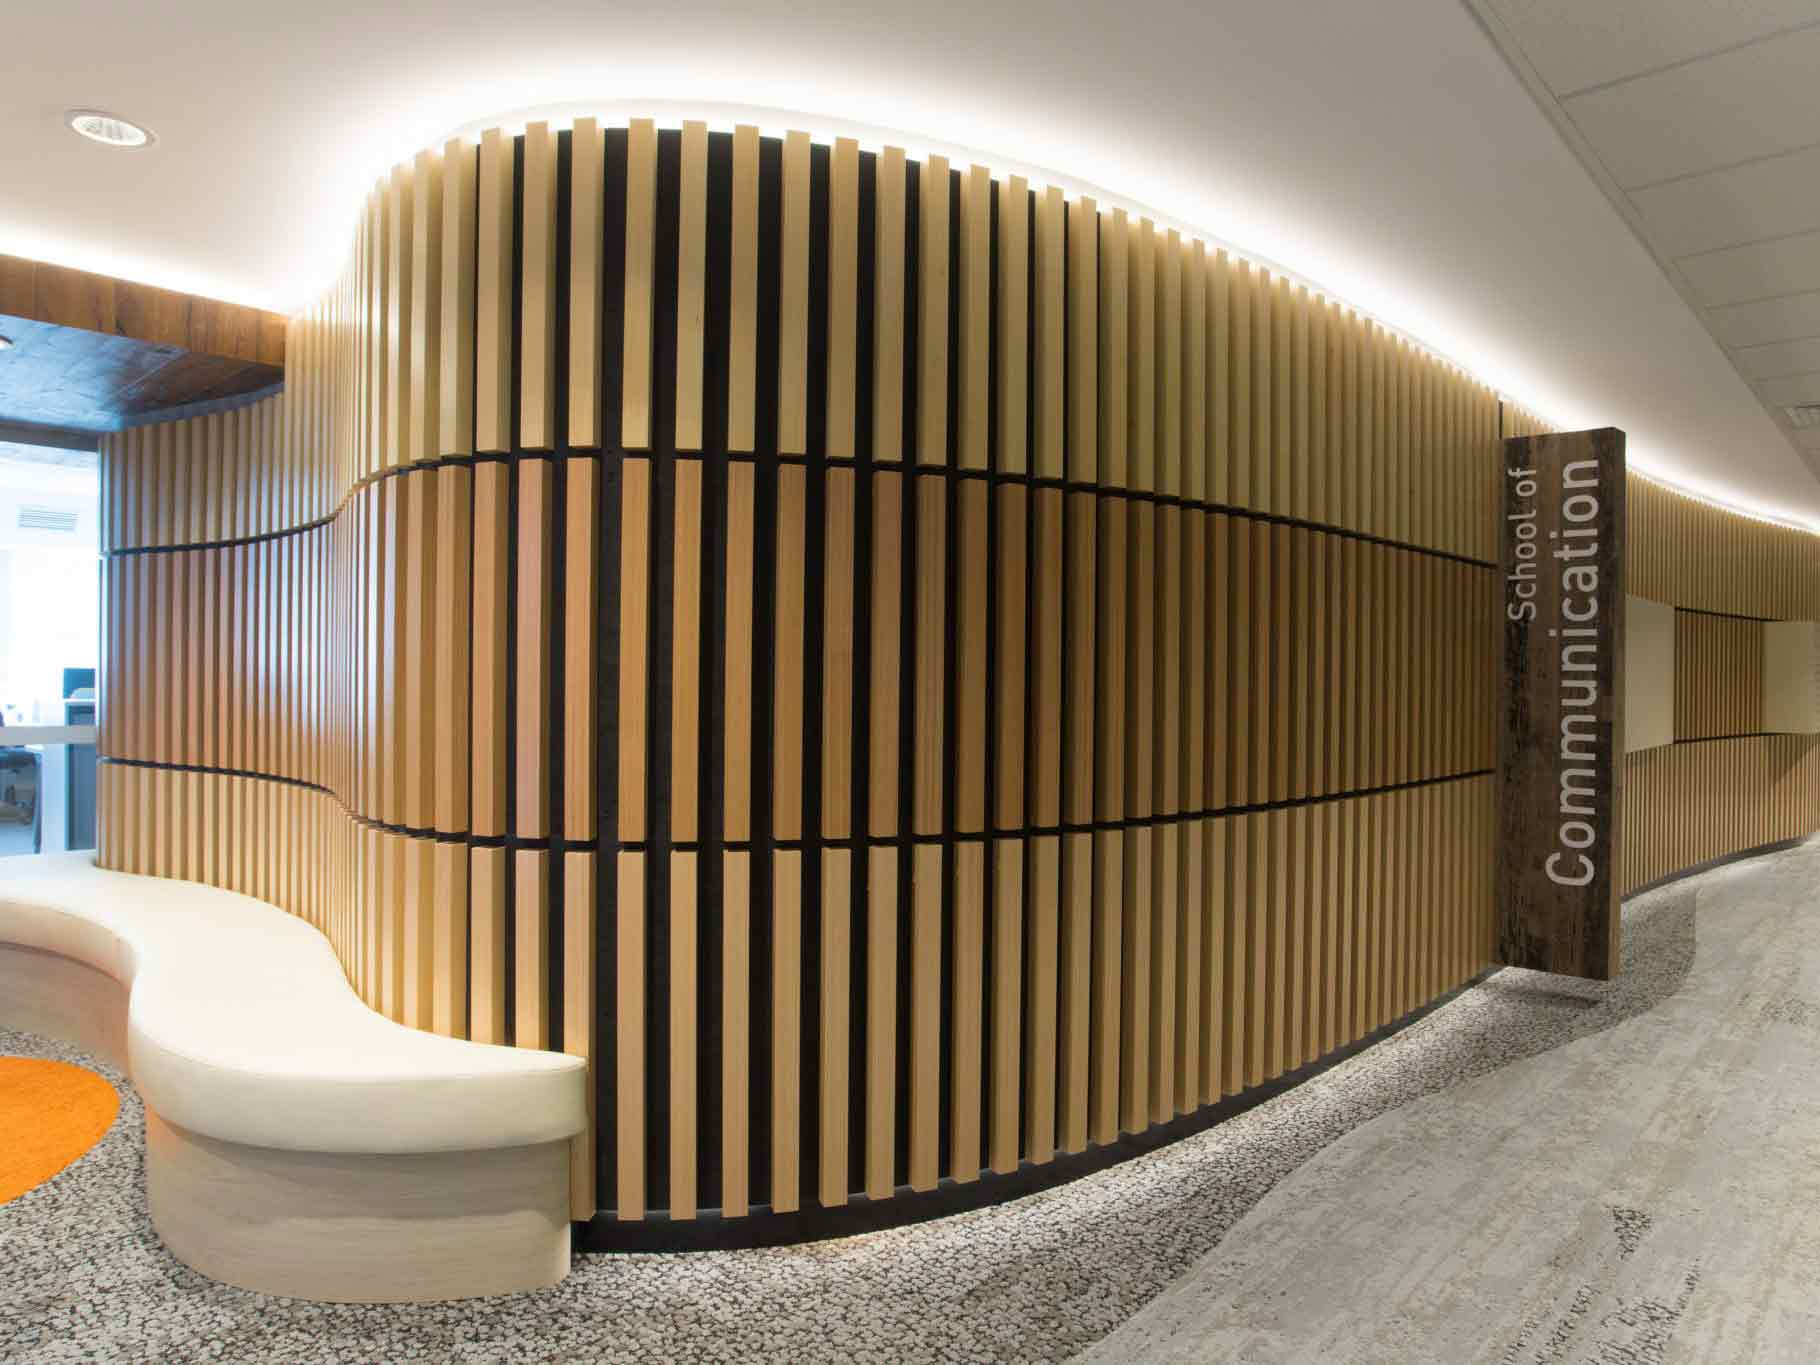 Reception area with slatted acoustic panels